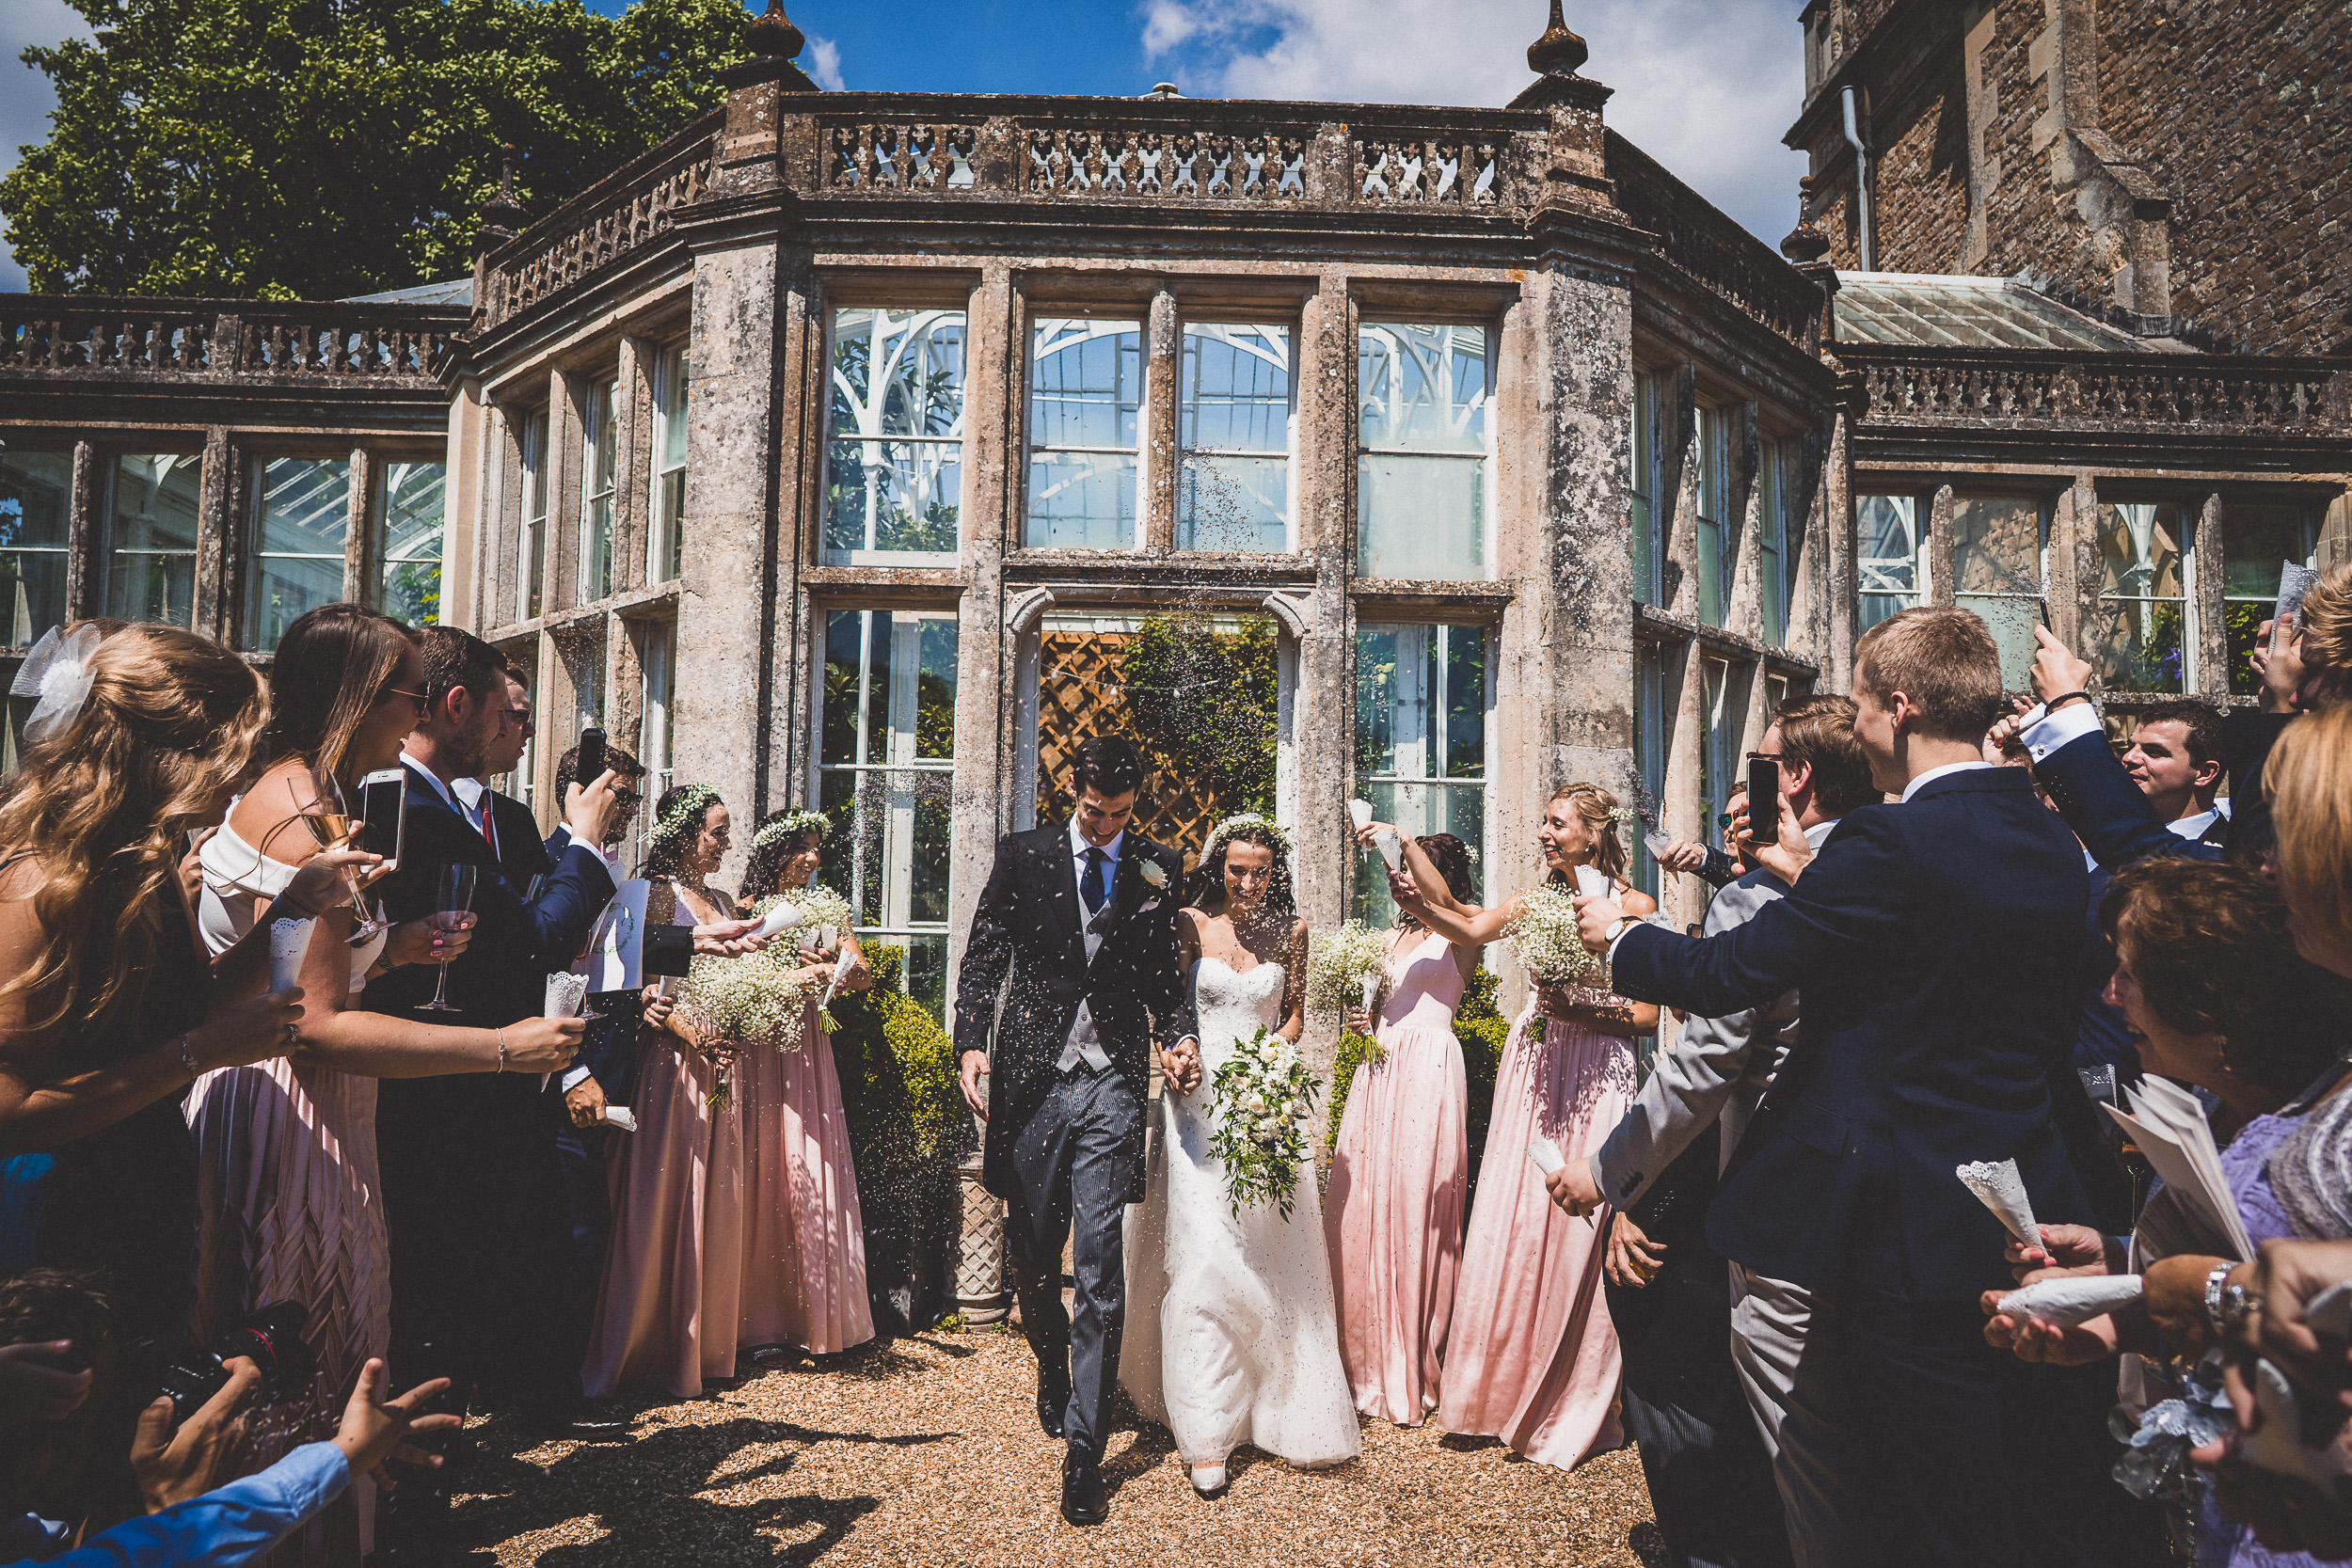 Wiston House Wedding Photography | Helouise & Alex Wiston house wedding photographer 016